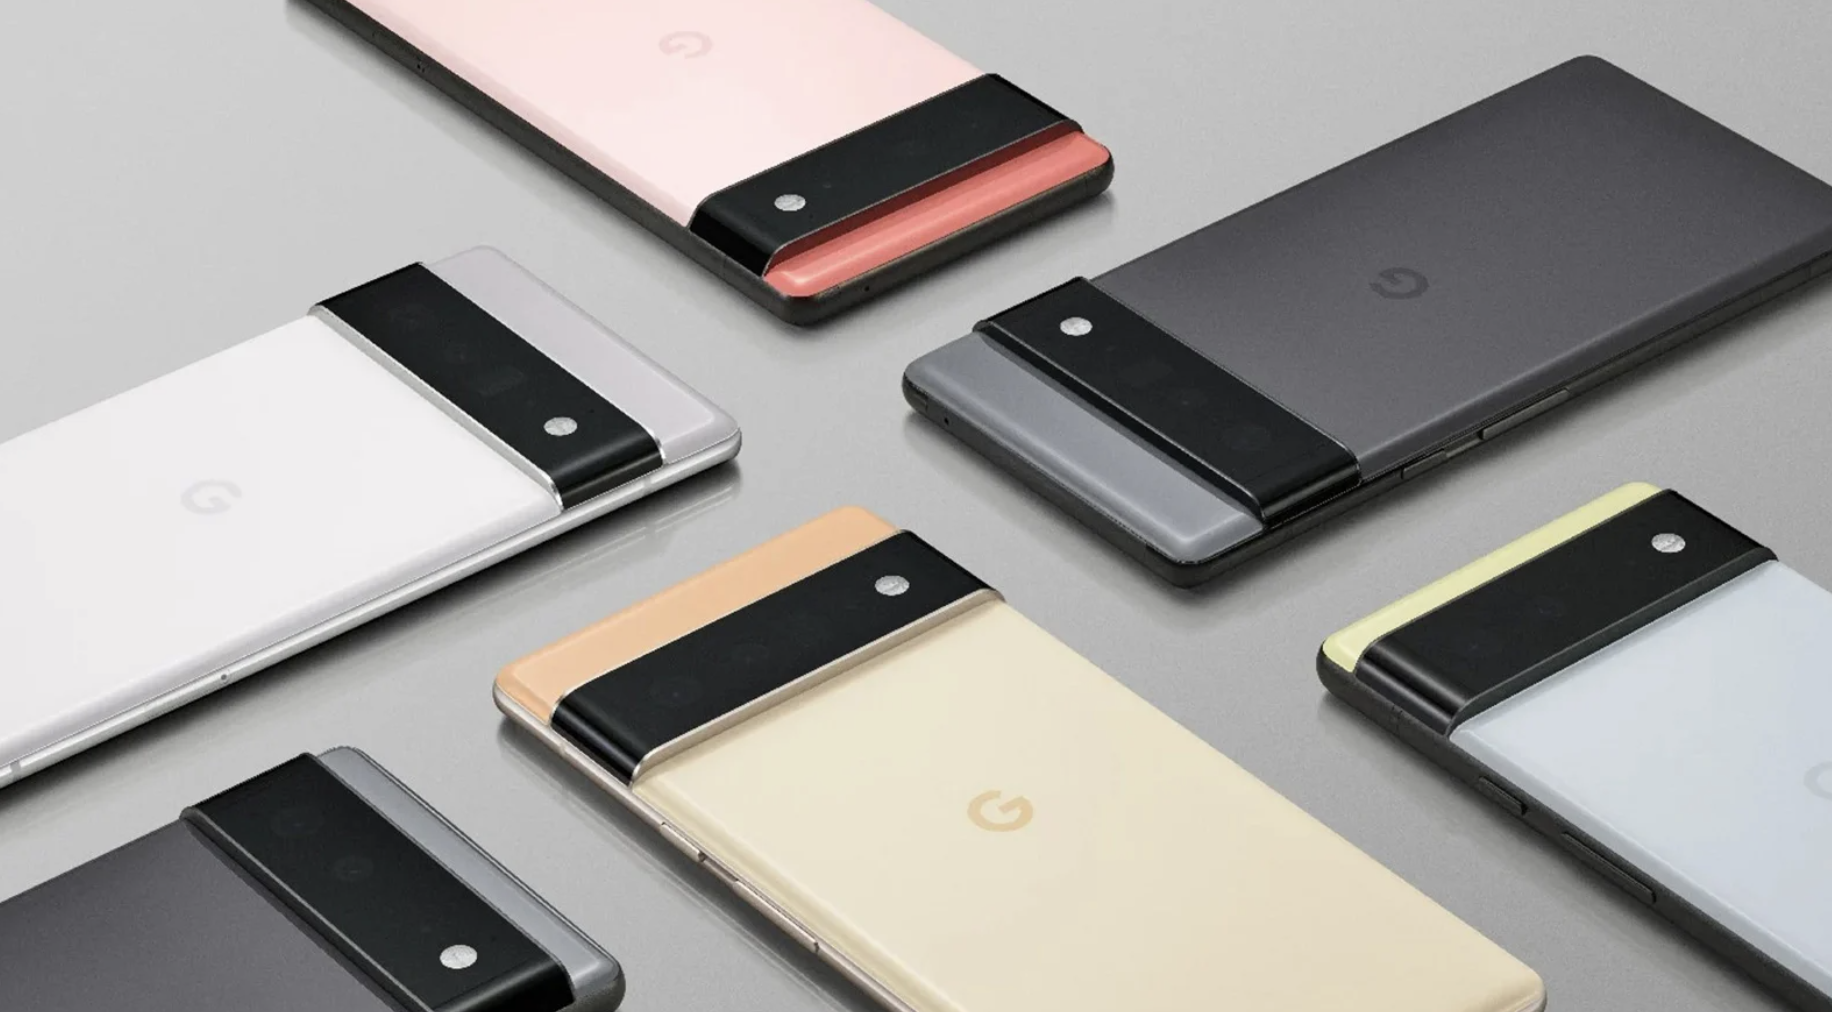 What To Expect At Google's Pixel 6 Launch Event